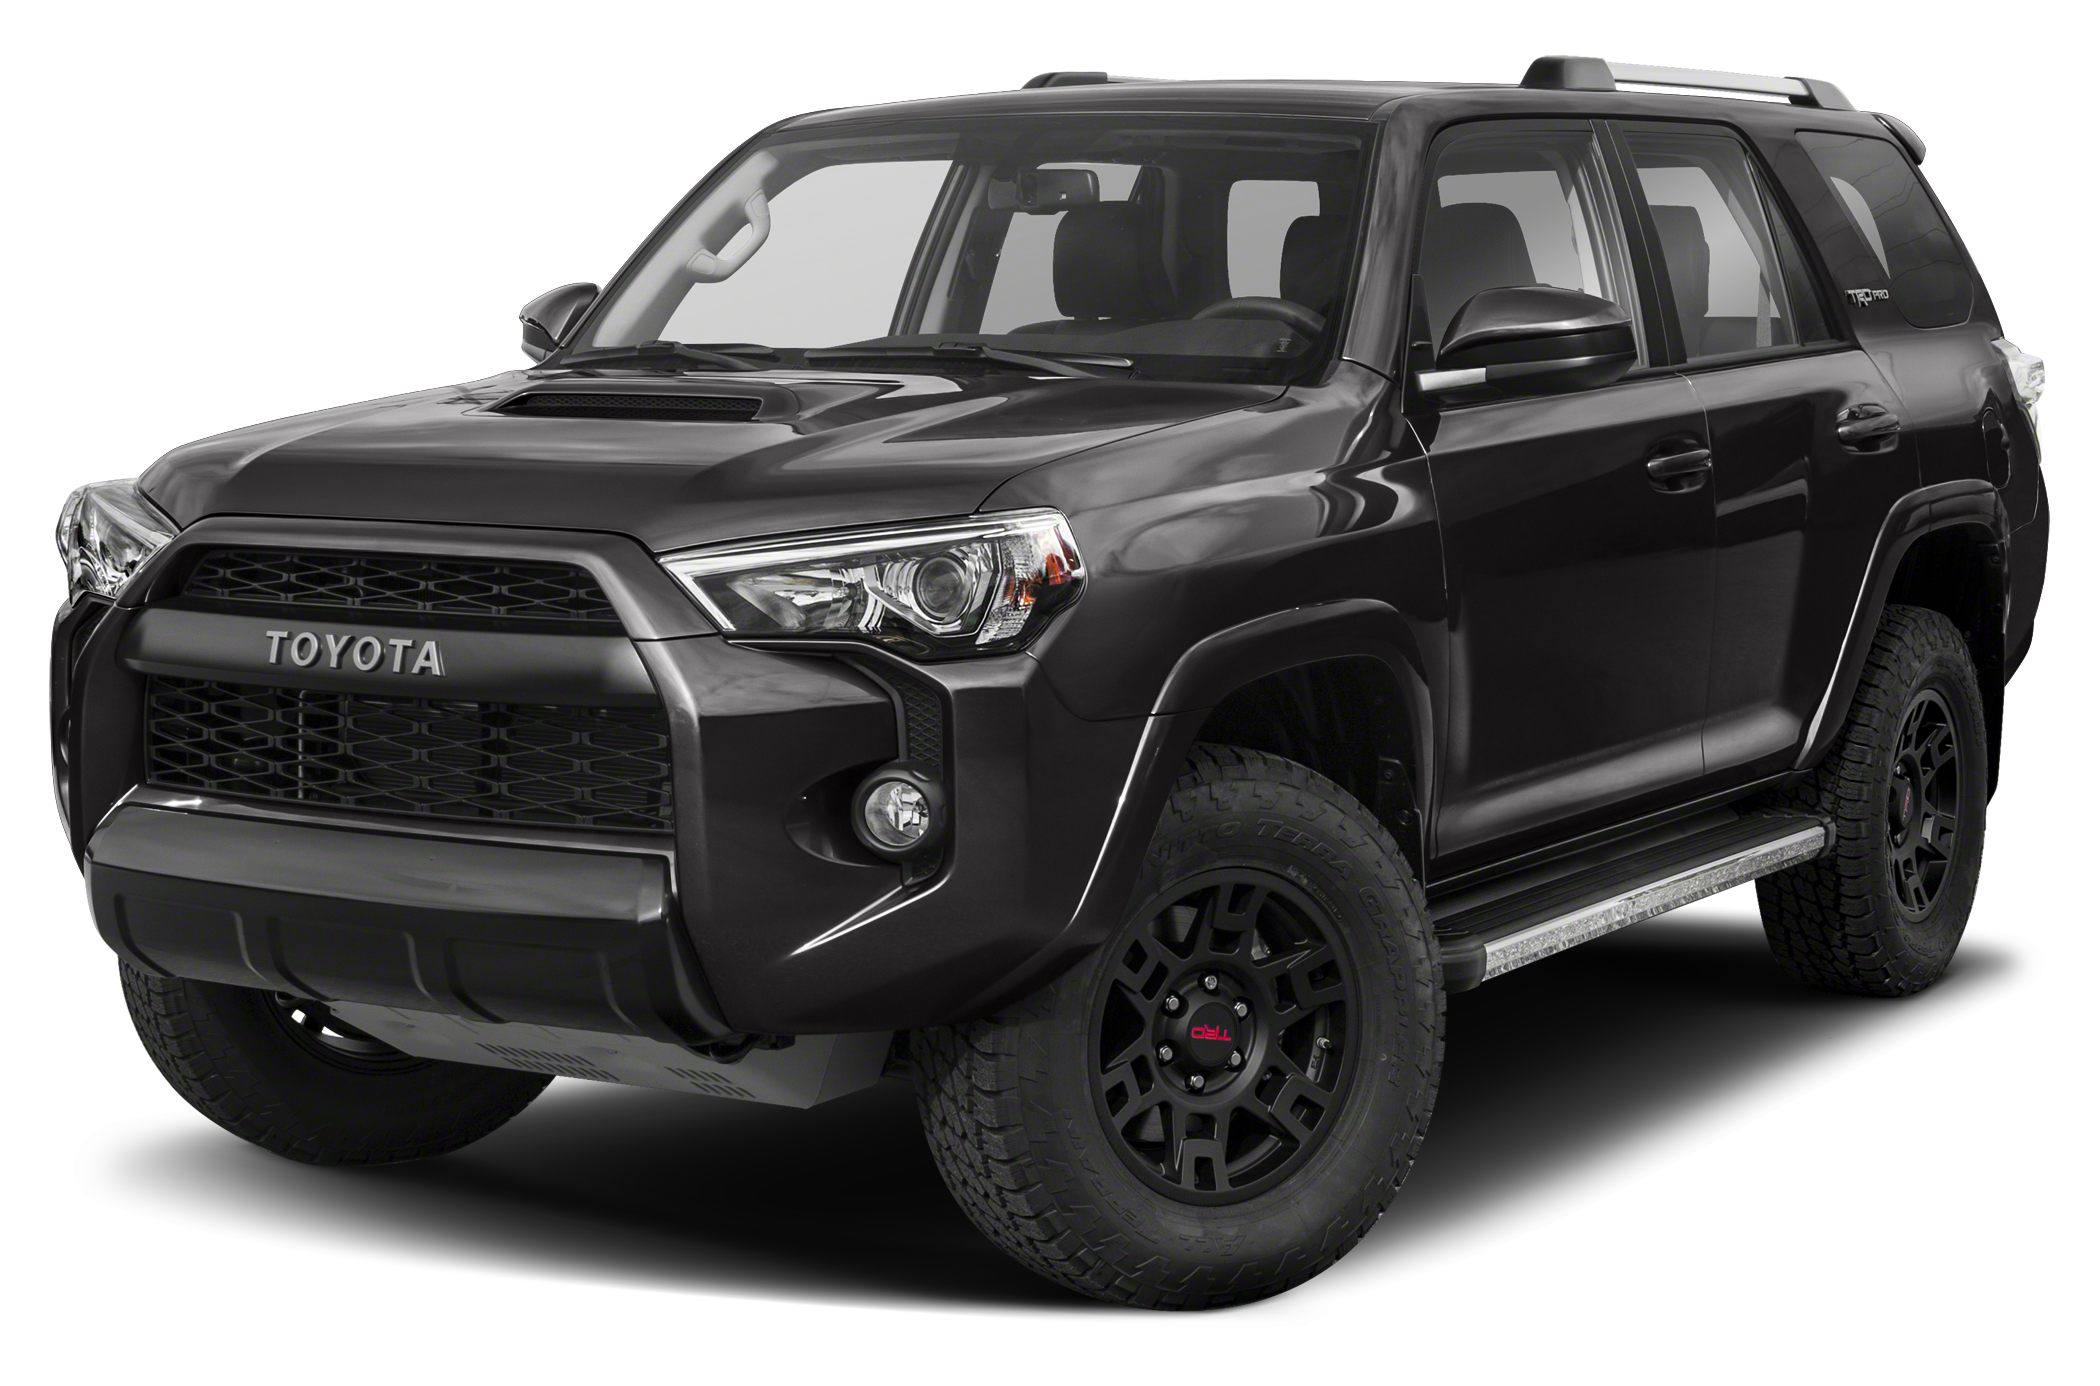 2019 Toyota 4runner Trd Pro 4dr 4x4 Specs And Prices